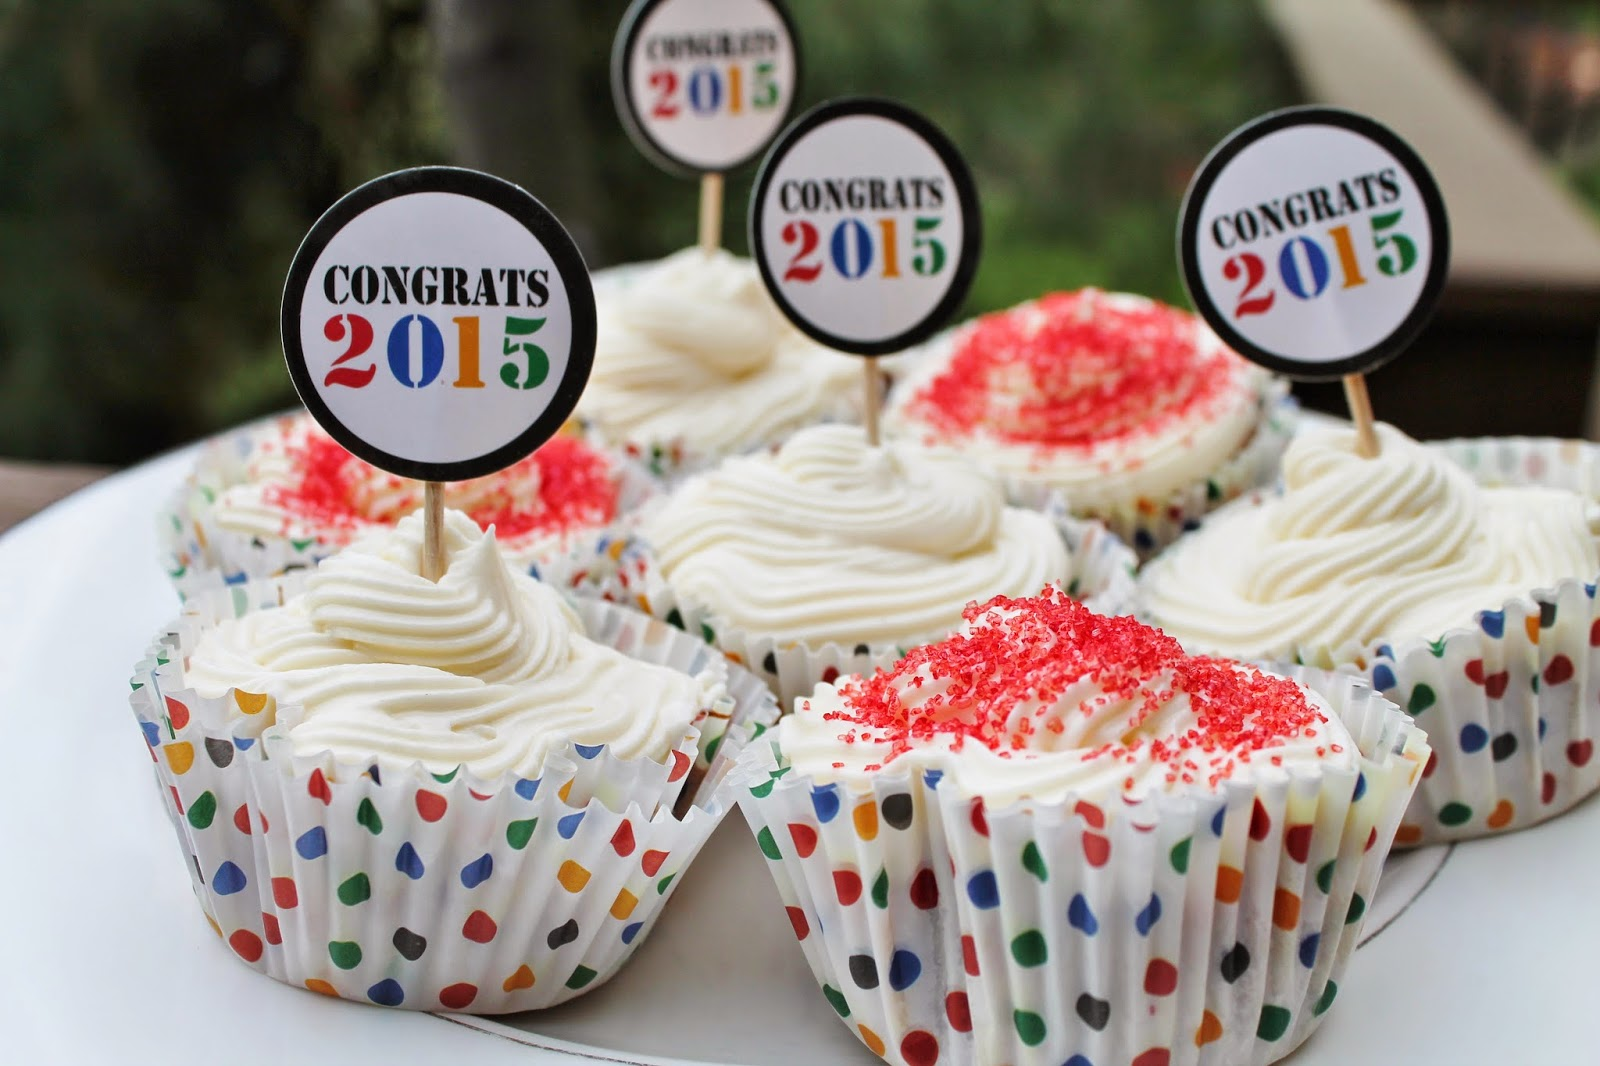 Strawberry Rhubarb Cupcakes//Congrats Grad! - Jersey Girl